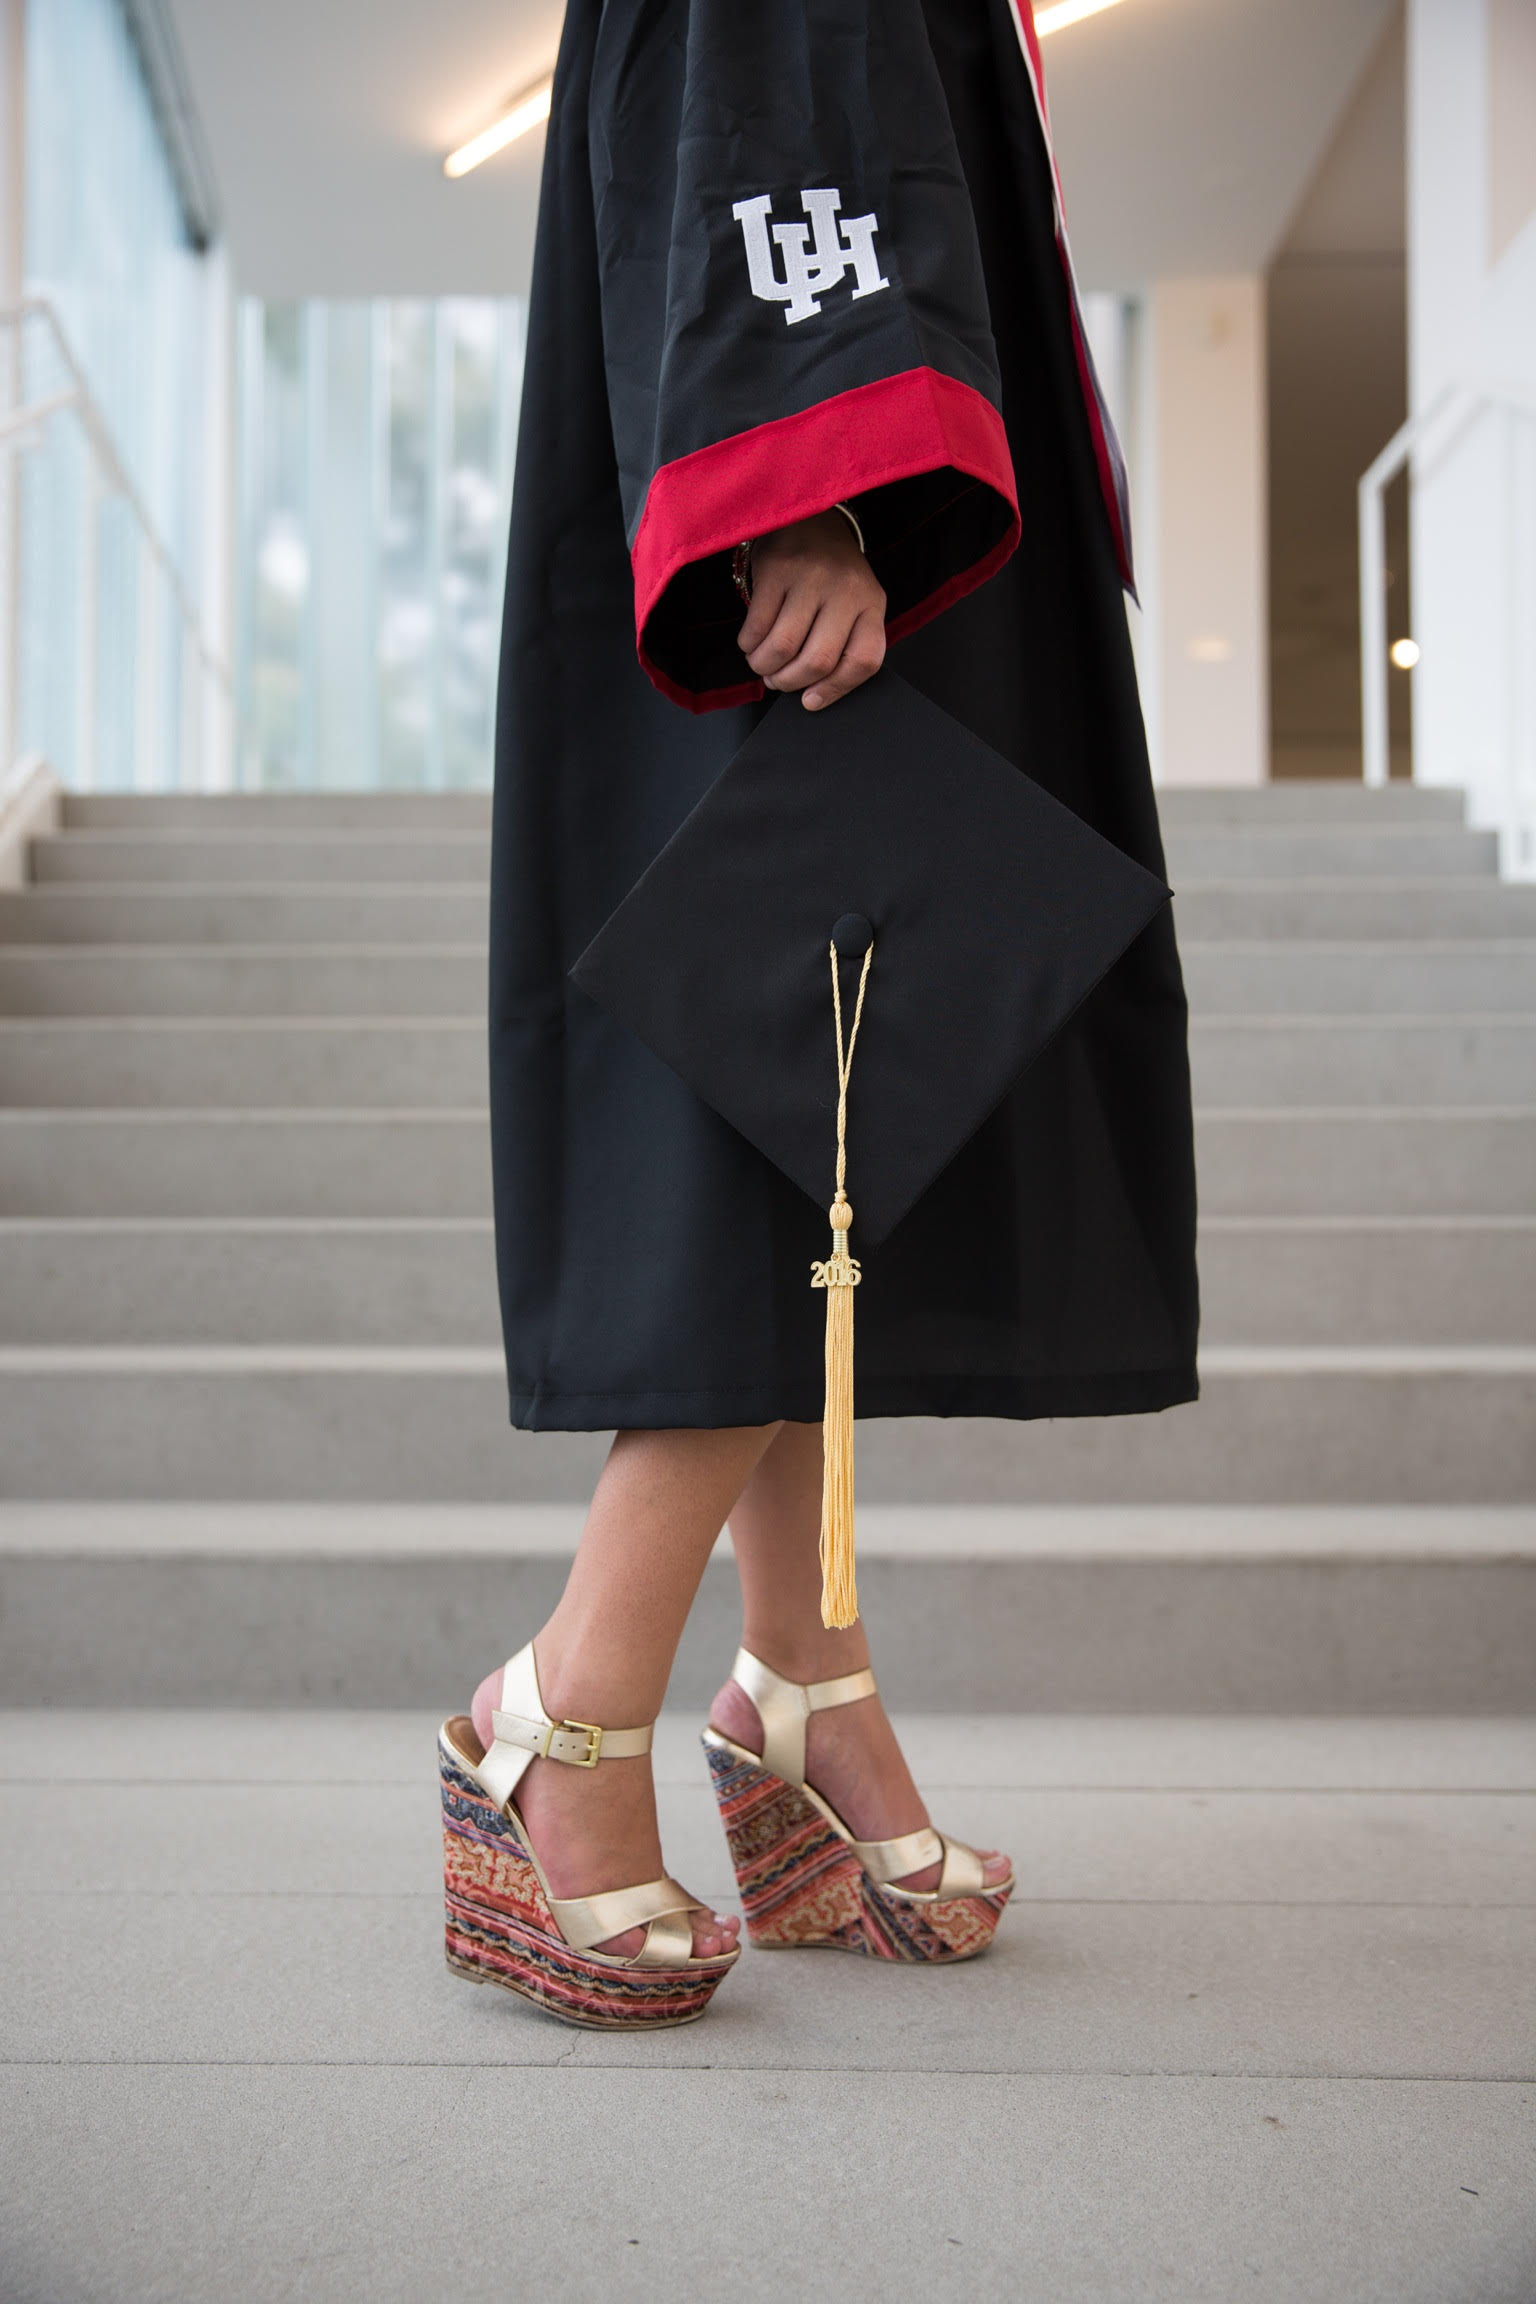 Graduate Cap and Heels Portrait